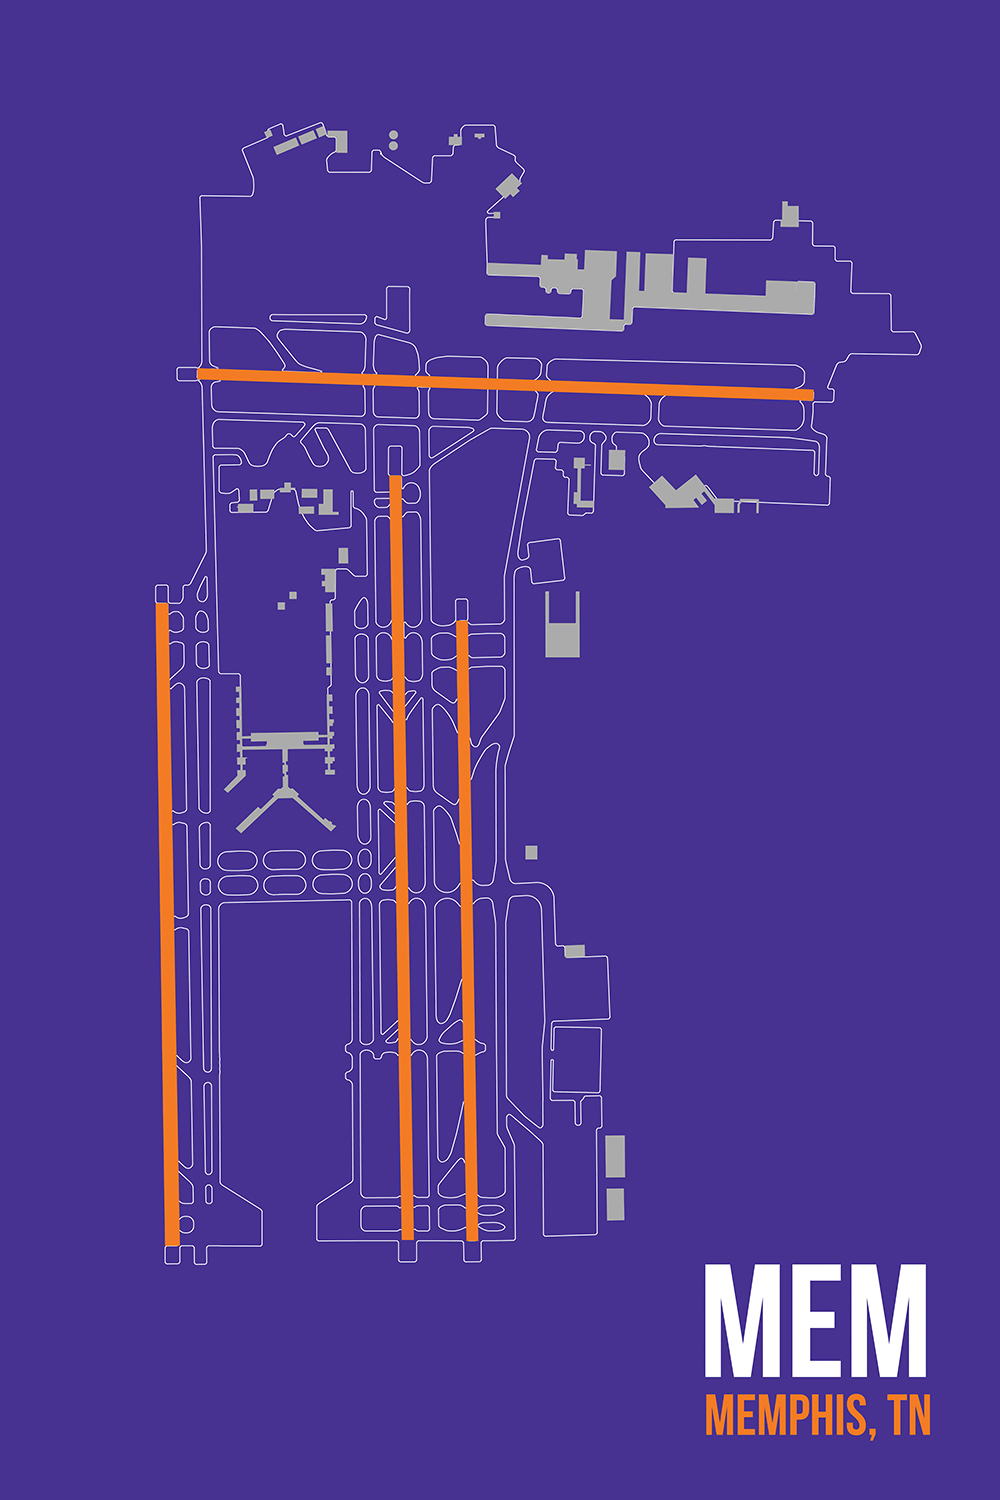 Minimalist line diagram of Memphis airport on a purple background with white and orange text